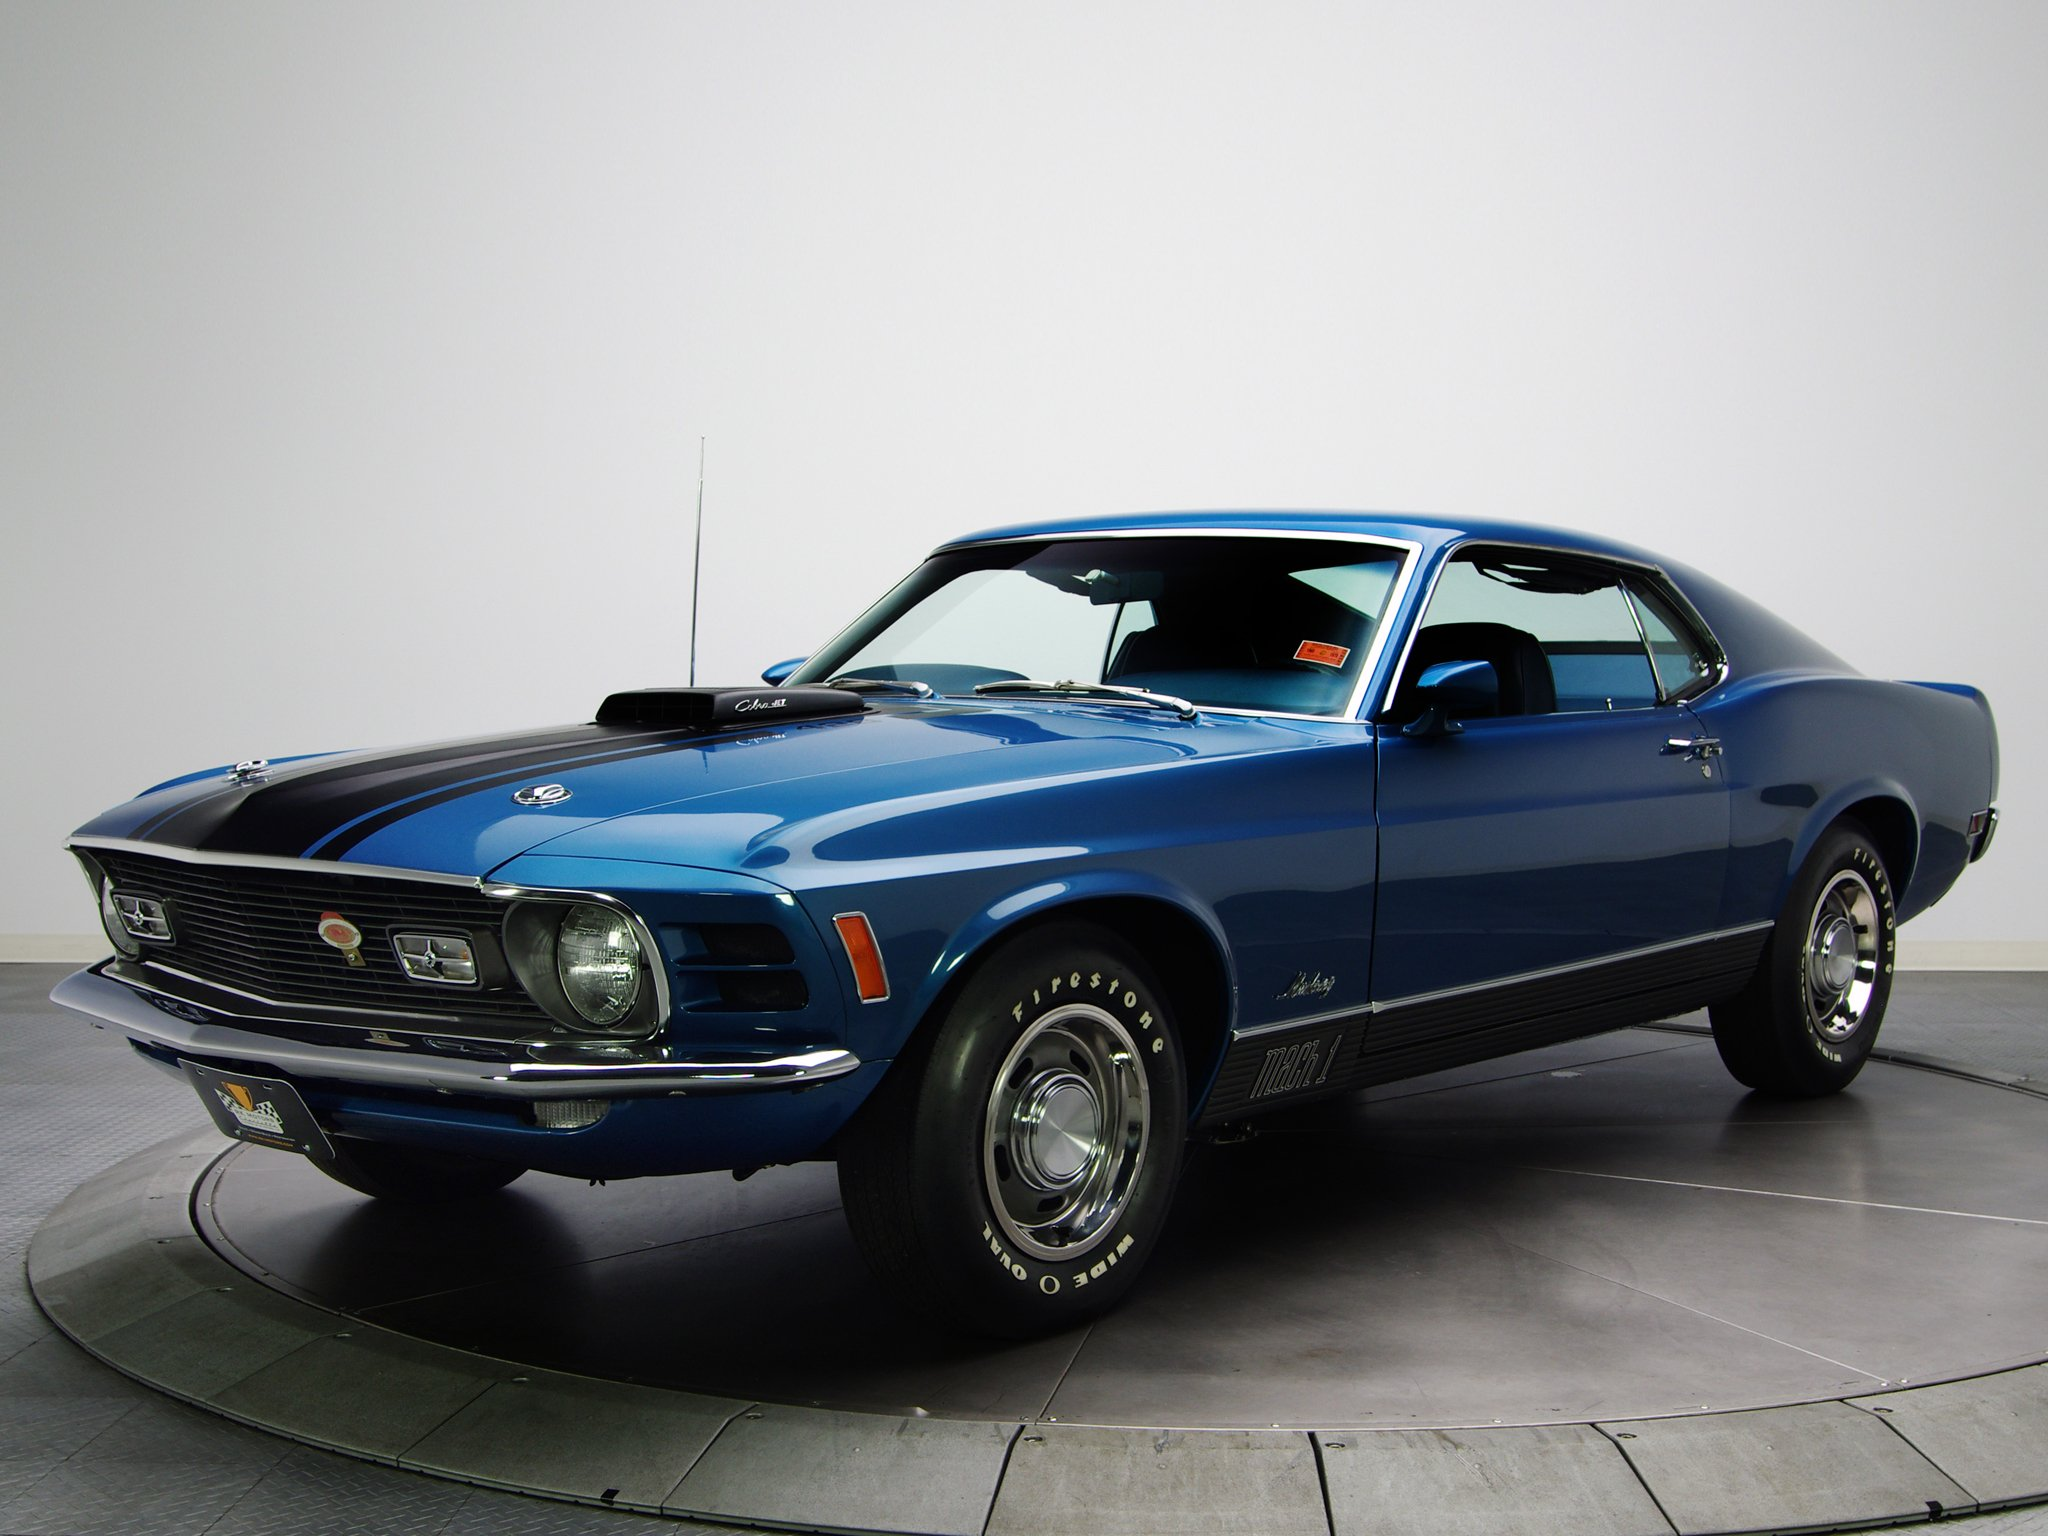 1970 Ford Mustang Mach 1 428 Super Cobra Jet Muscle